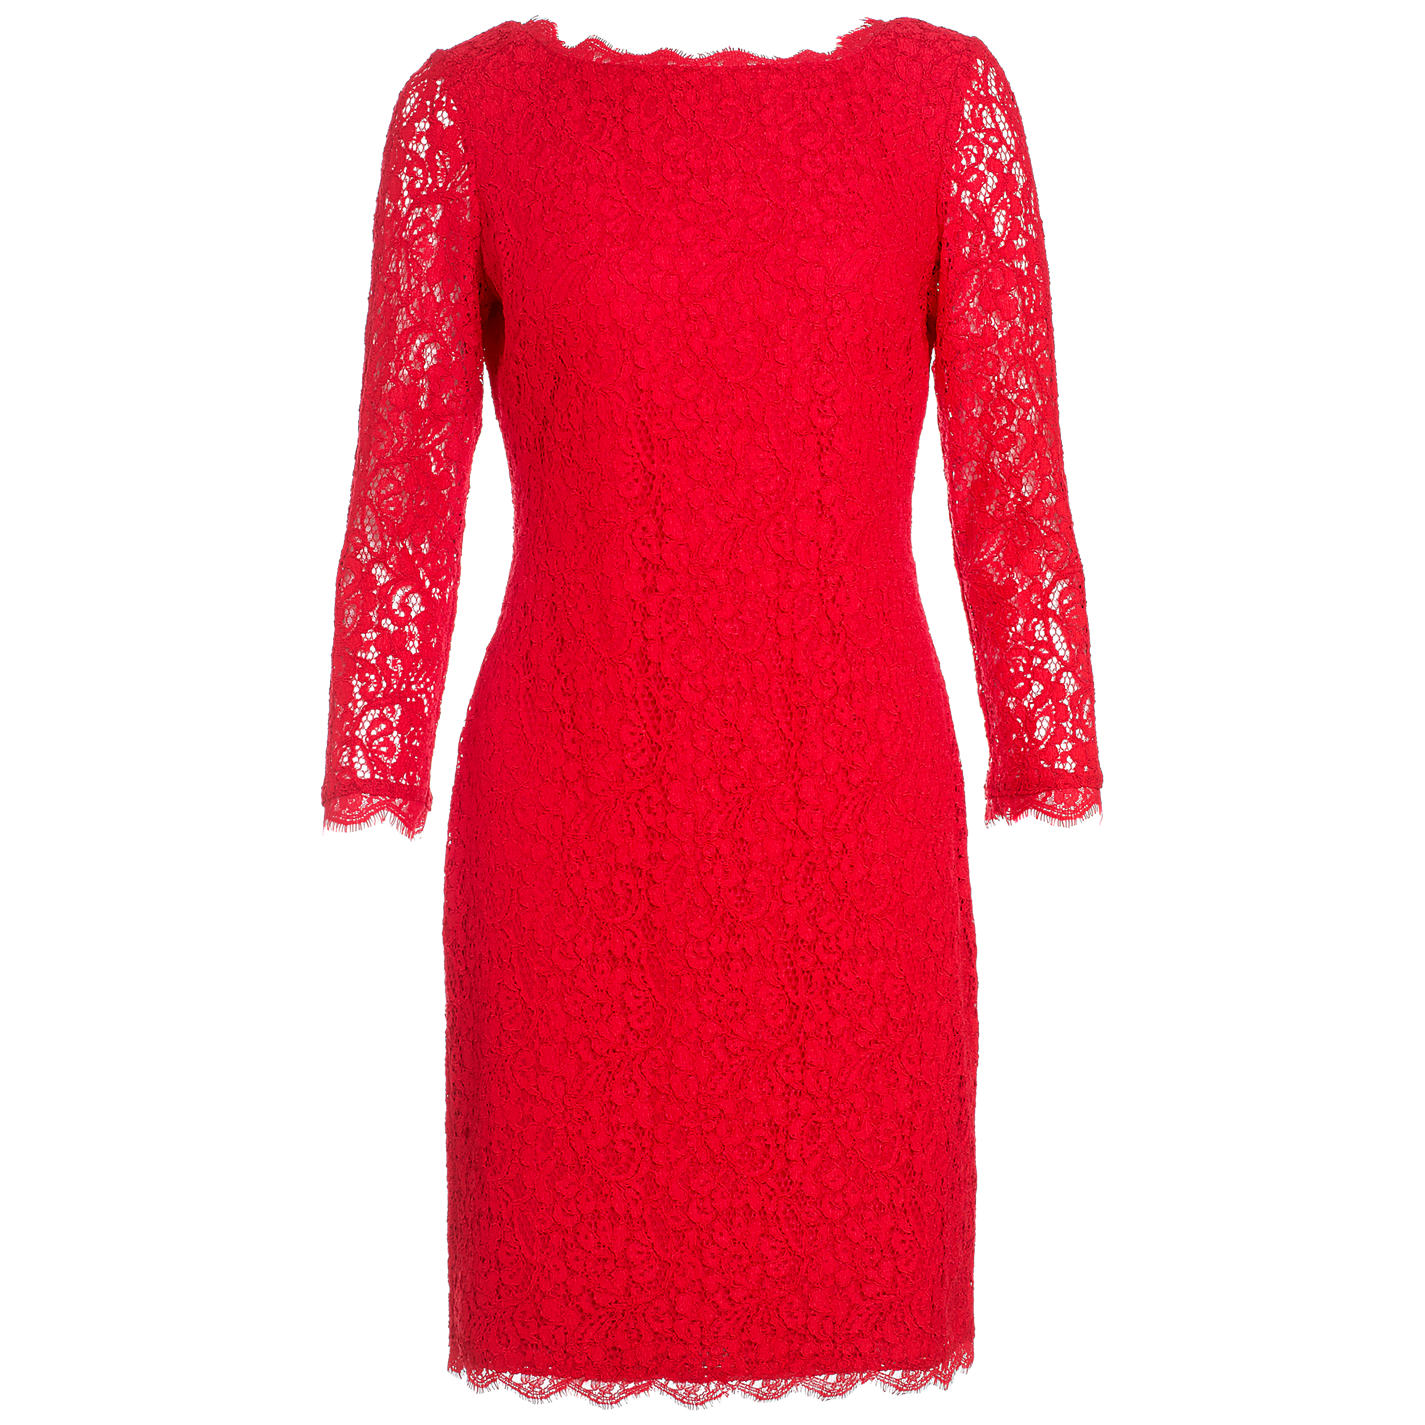 Lace Dresses With Sleeves: How To Choose Red Dresses With Sleeves To Get The Helen